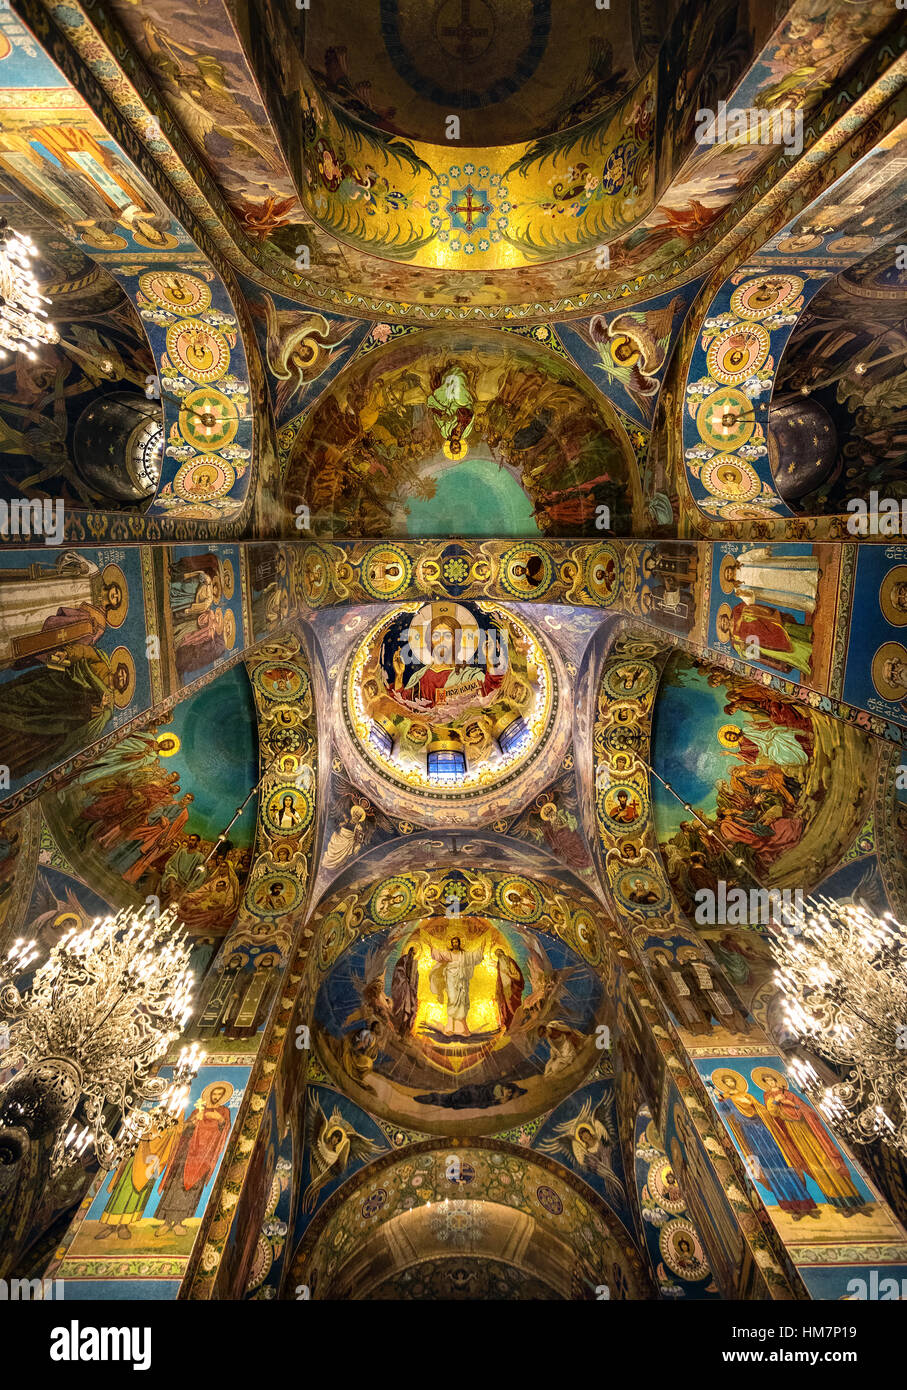 Interior of the Church of the Savior on Spilled Blood in Saint Petersburg, Russia - Stock Image